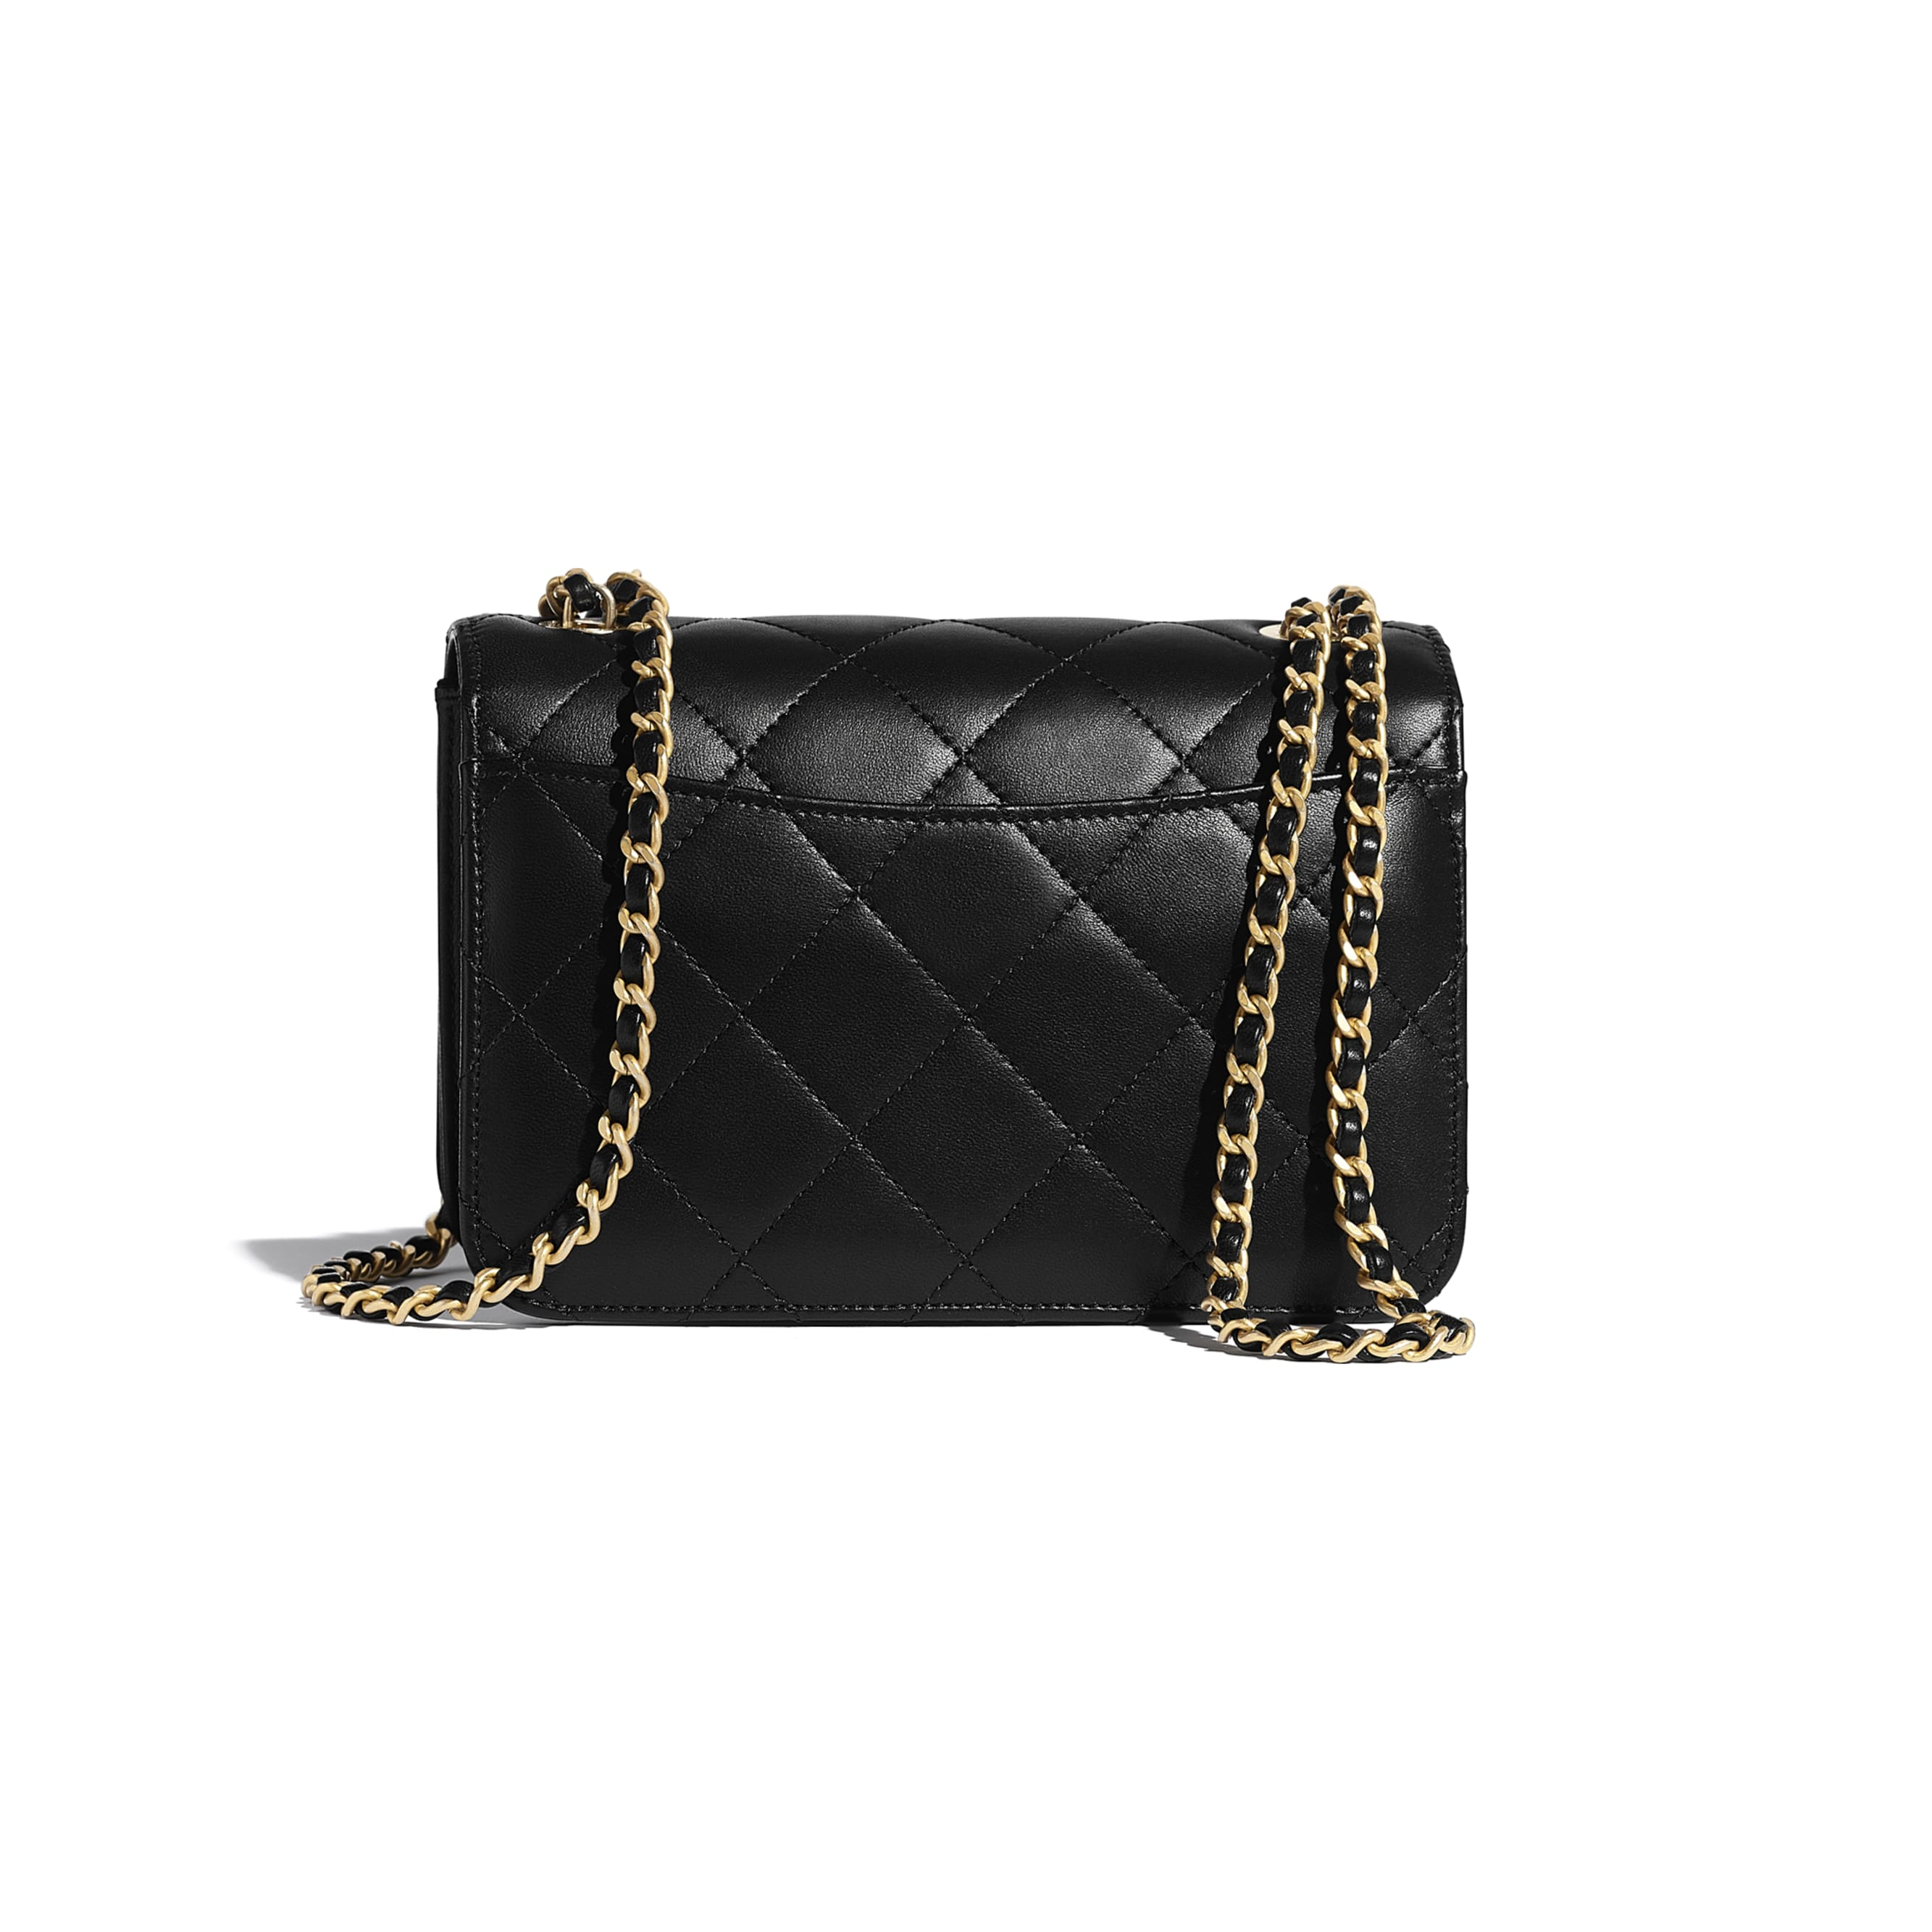 Flap Bag - Black & White - Calfskin, Crystal Pearls, Resin & Gold-Tone Metal - CHANEL - Alternative view - see standard sized version